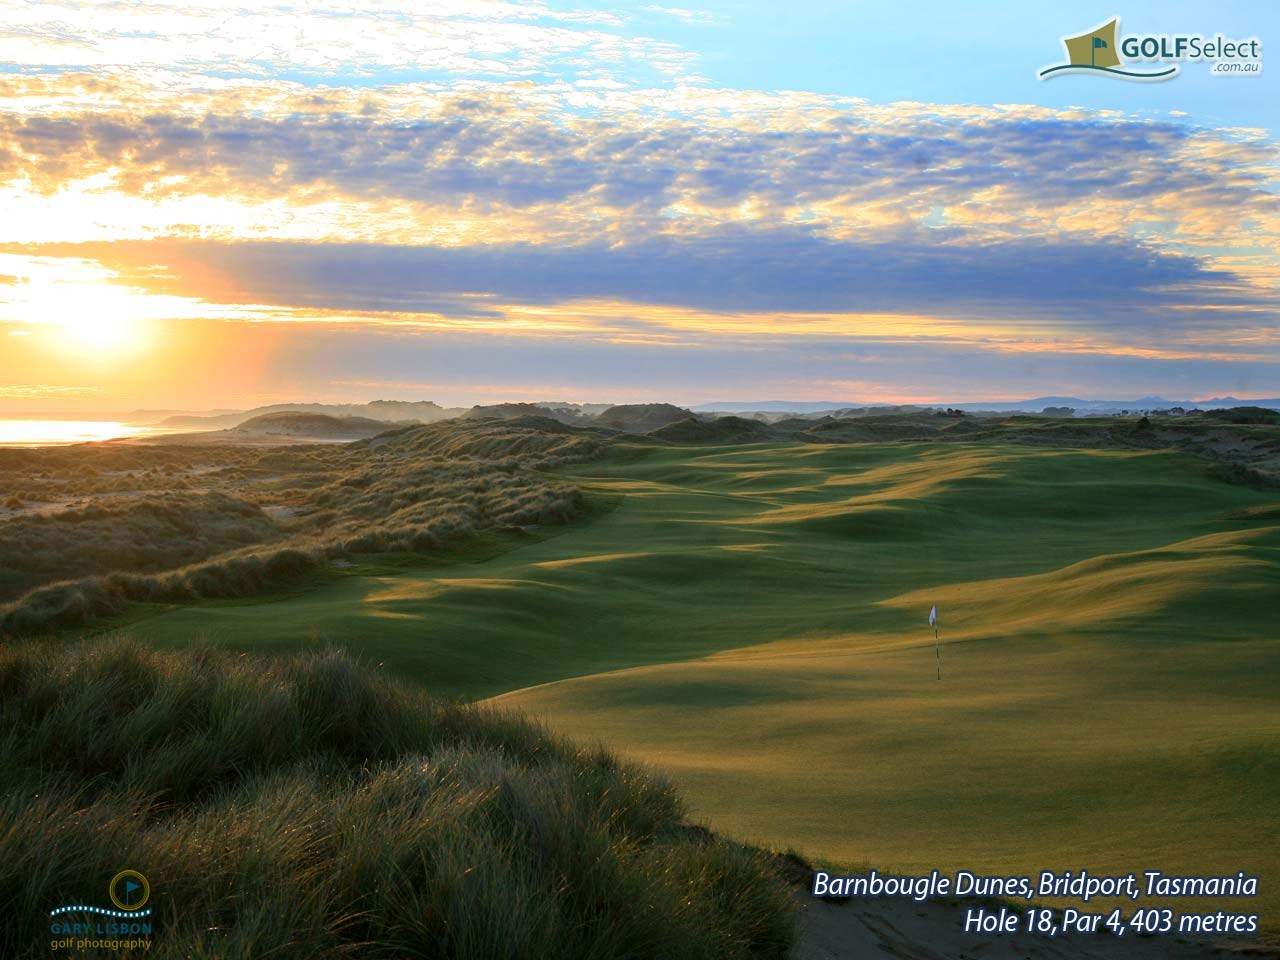 Barnbougle Dunes Golf Links Hole 18, Par 4, 403 metres